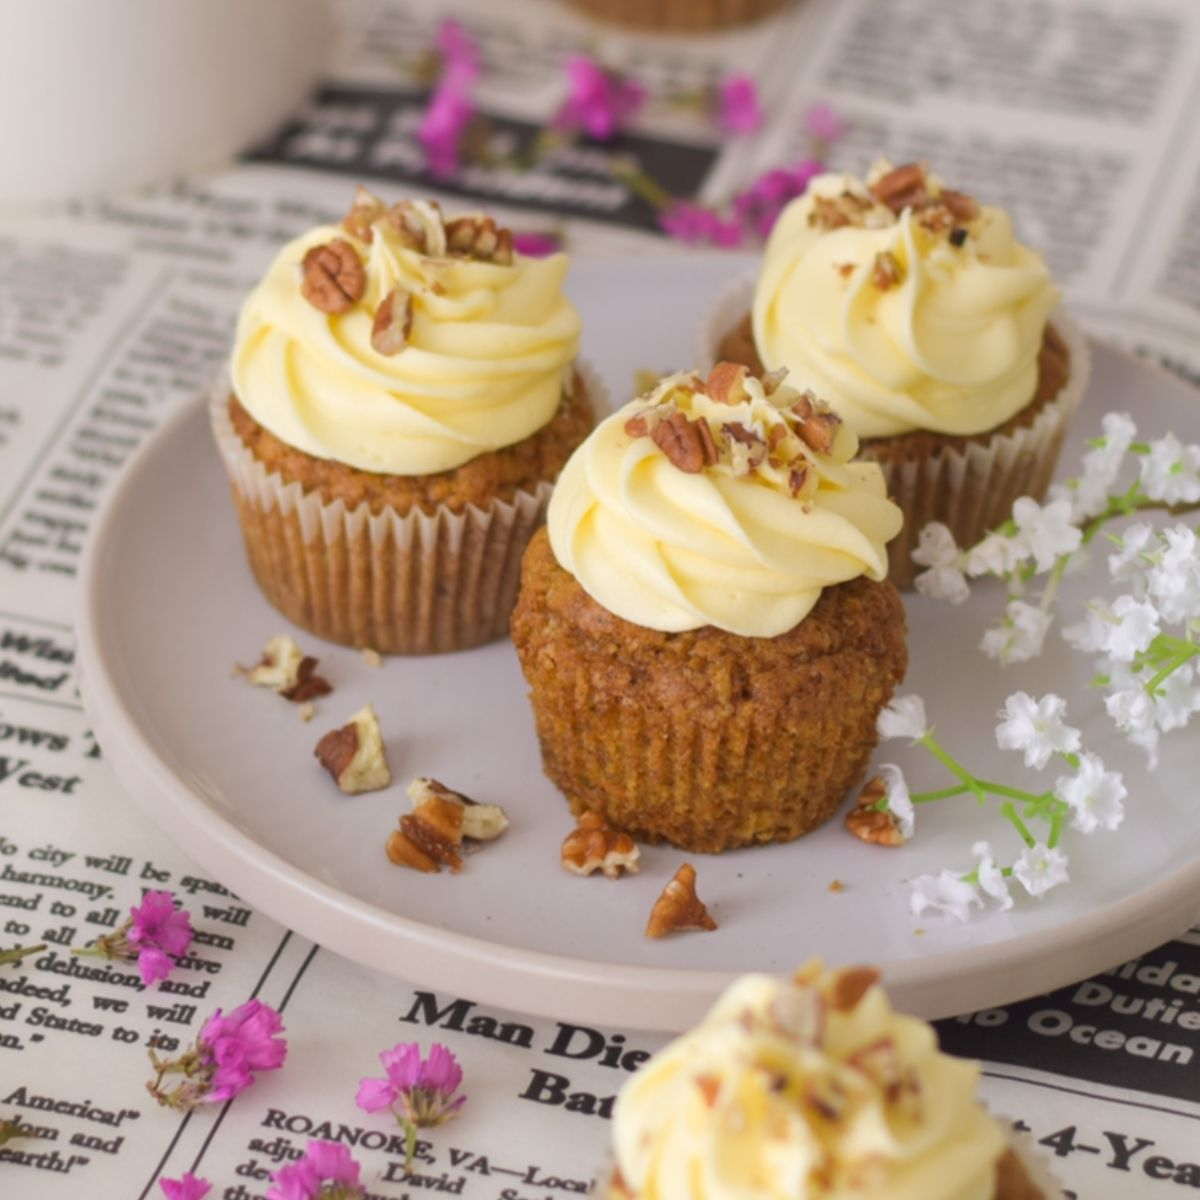 Carrot cupcakes on a white plate with white and pink flowers around